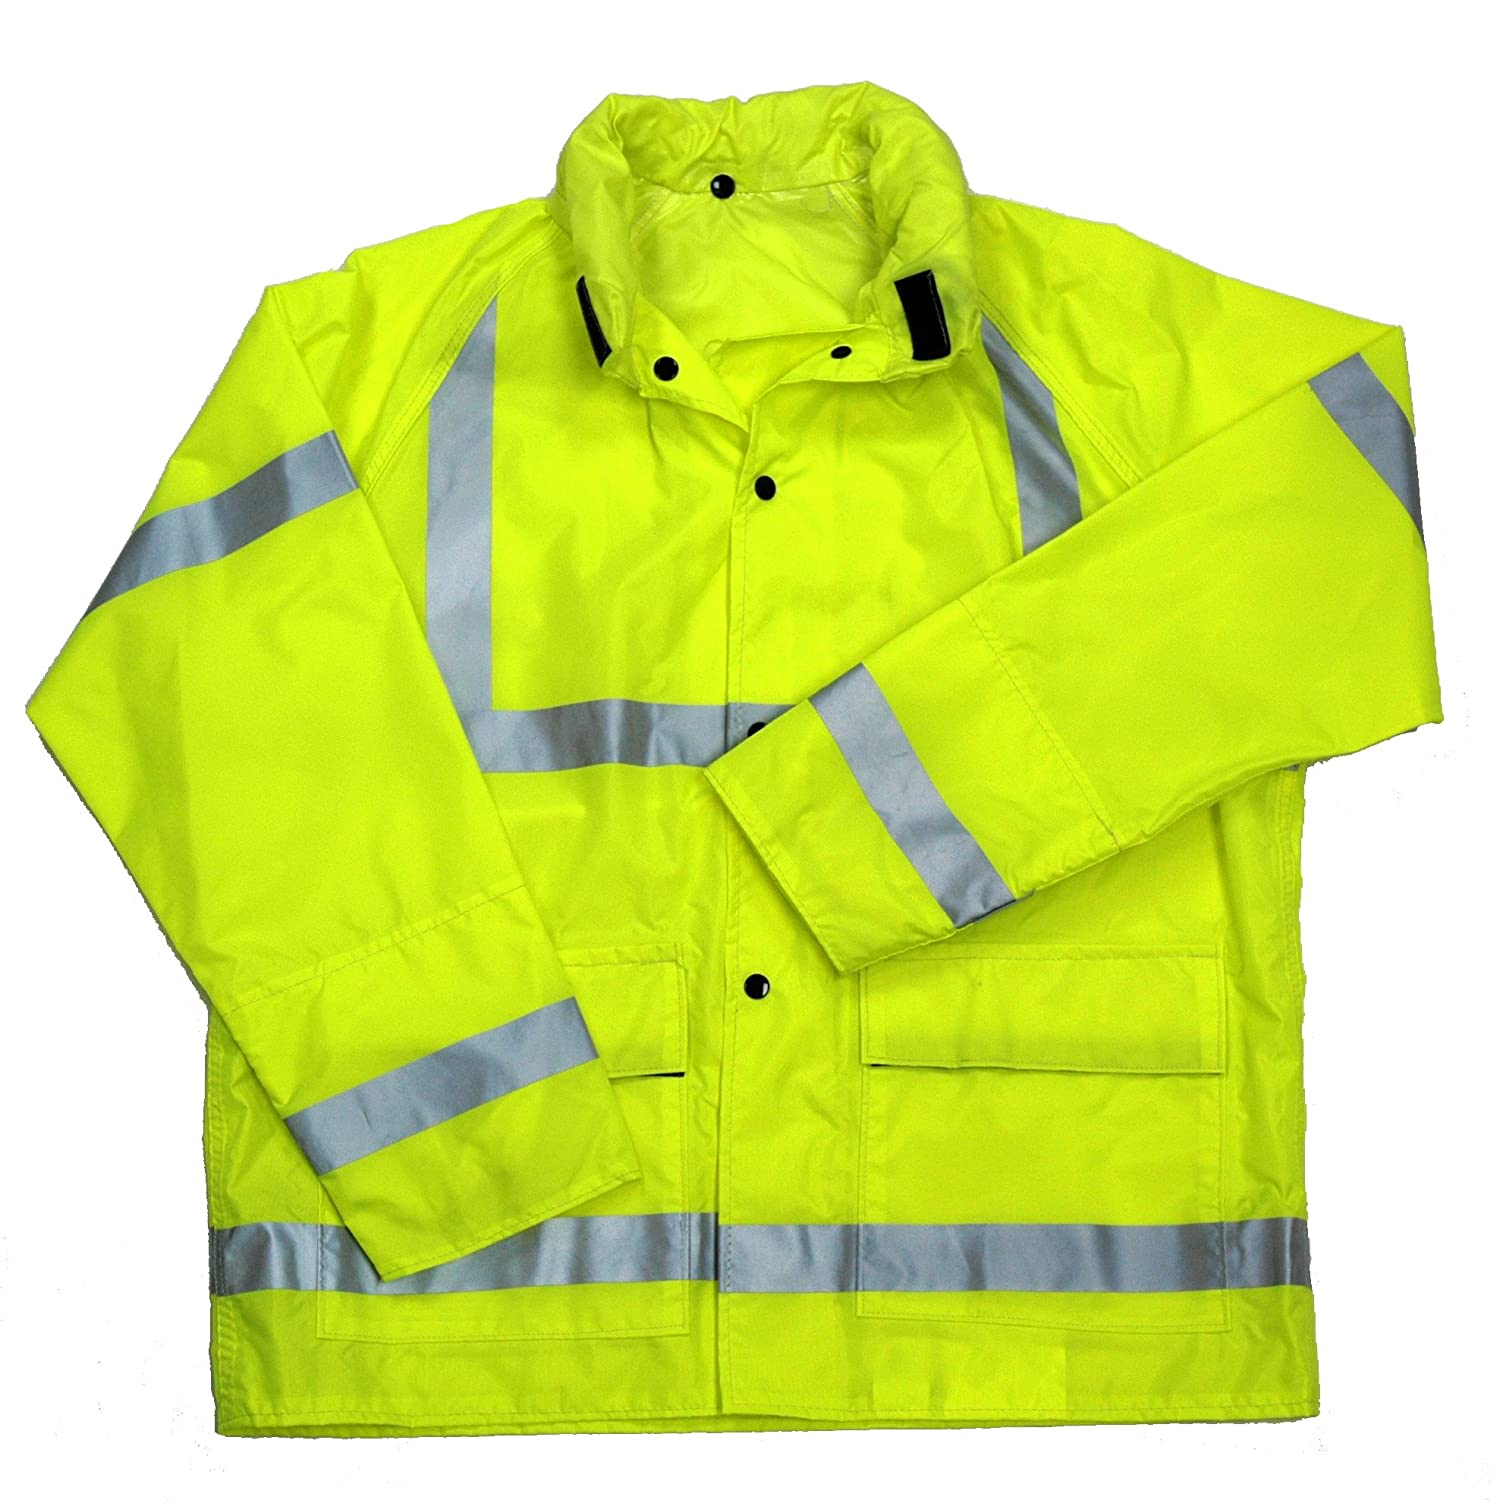 Neese Industries Style #NV7002AJ Telcom Polyurethane Coated Polyester Class 3 Jacket with Attached Tuck-Away Hood Hi-Viz Lime 4XL